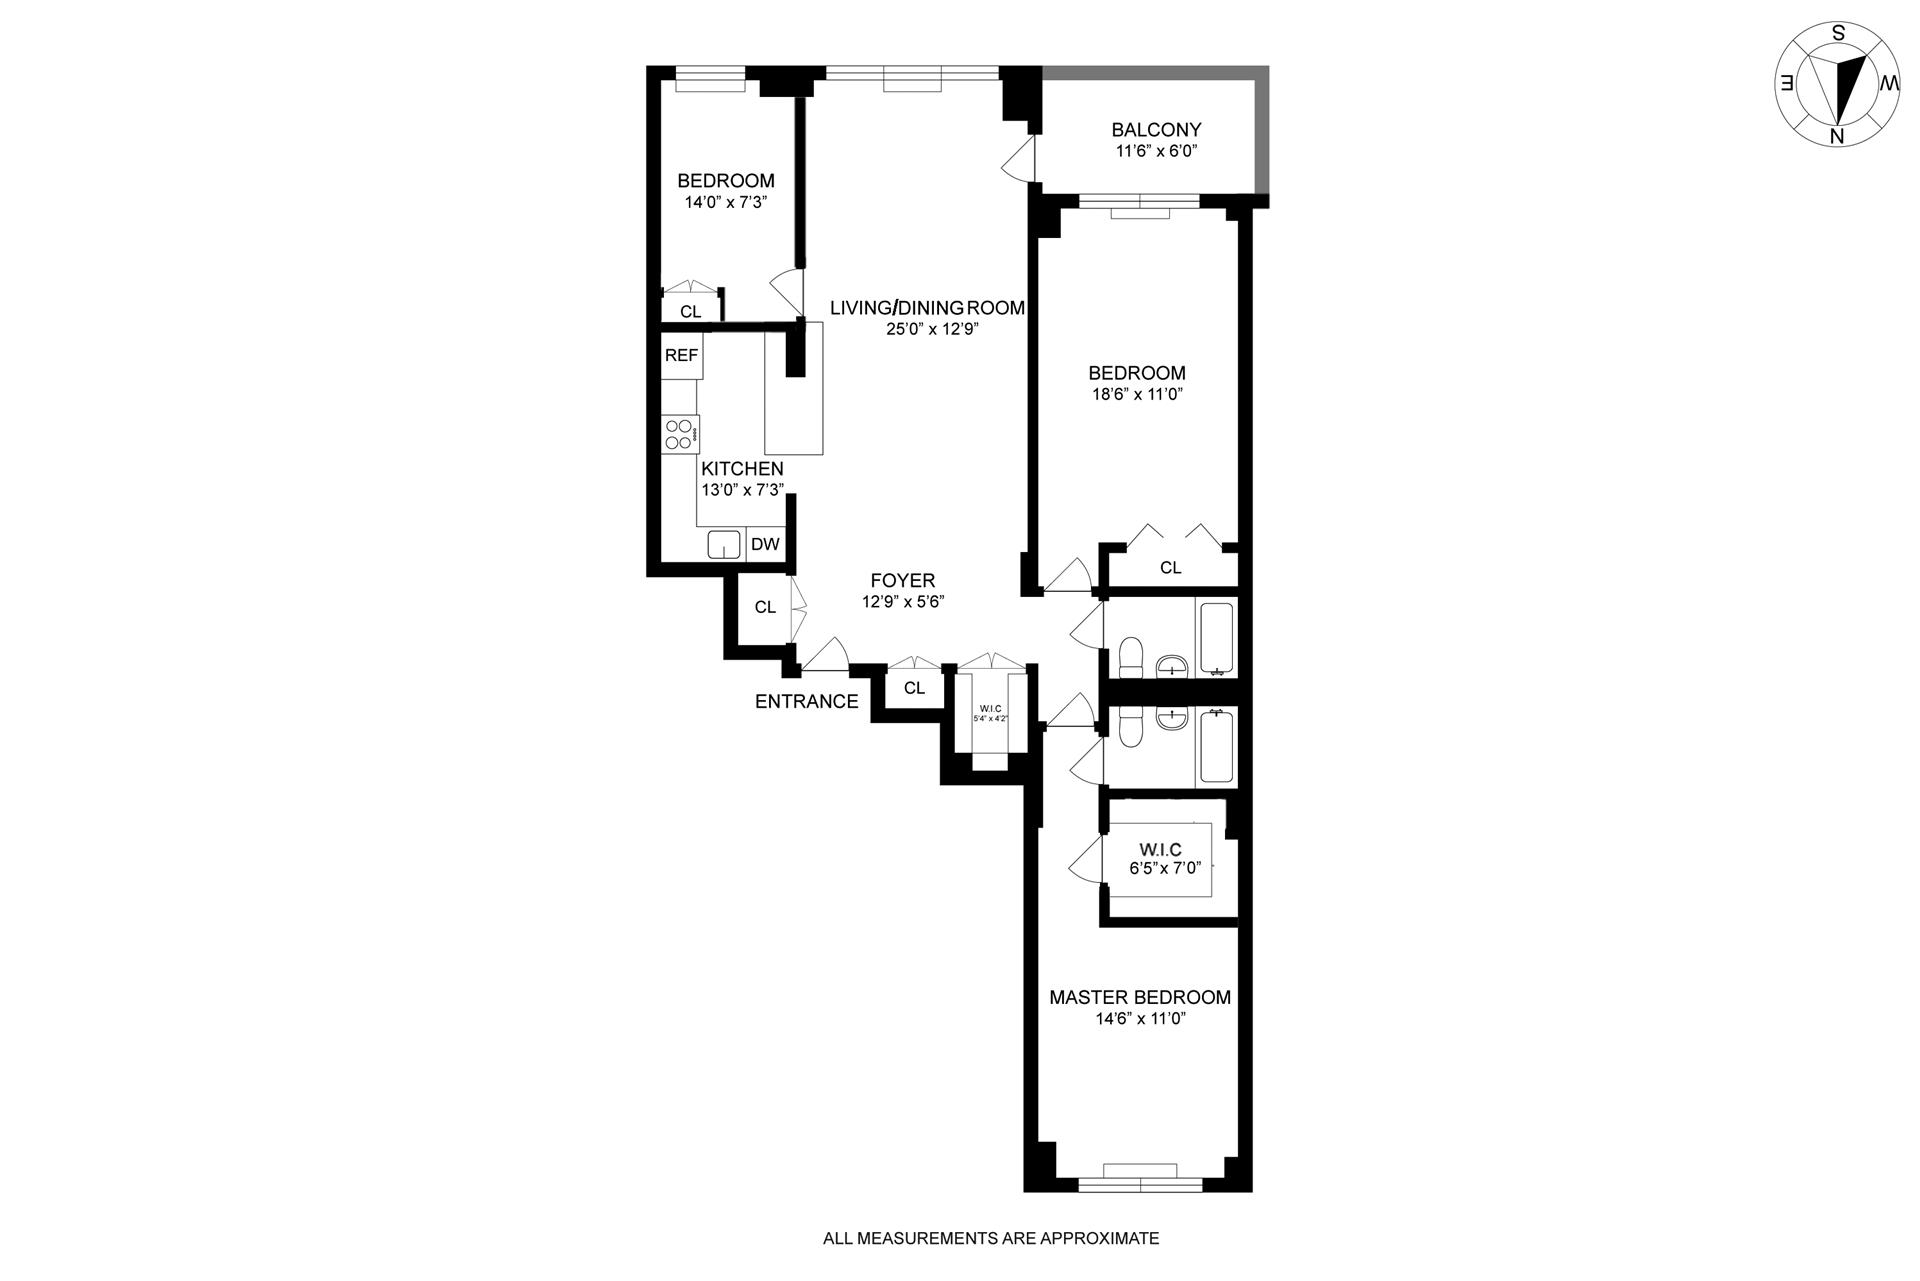 Floor plan of MORAD DIPLOMAT, 345 East 73rd St, 7H - Upper East Side, New York